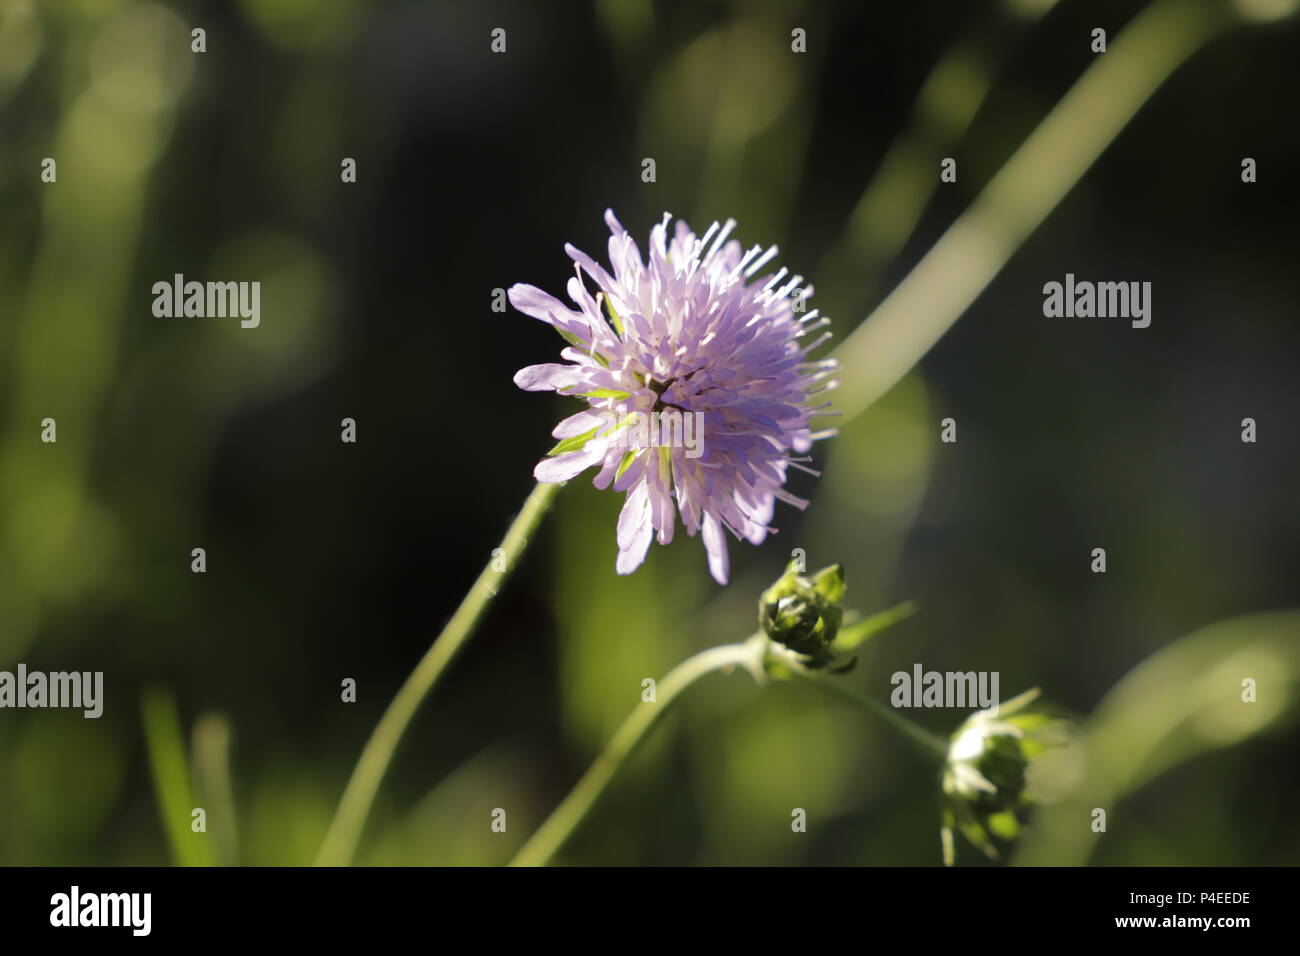 scabious flower a beautiful pink flower - Stock Image